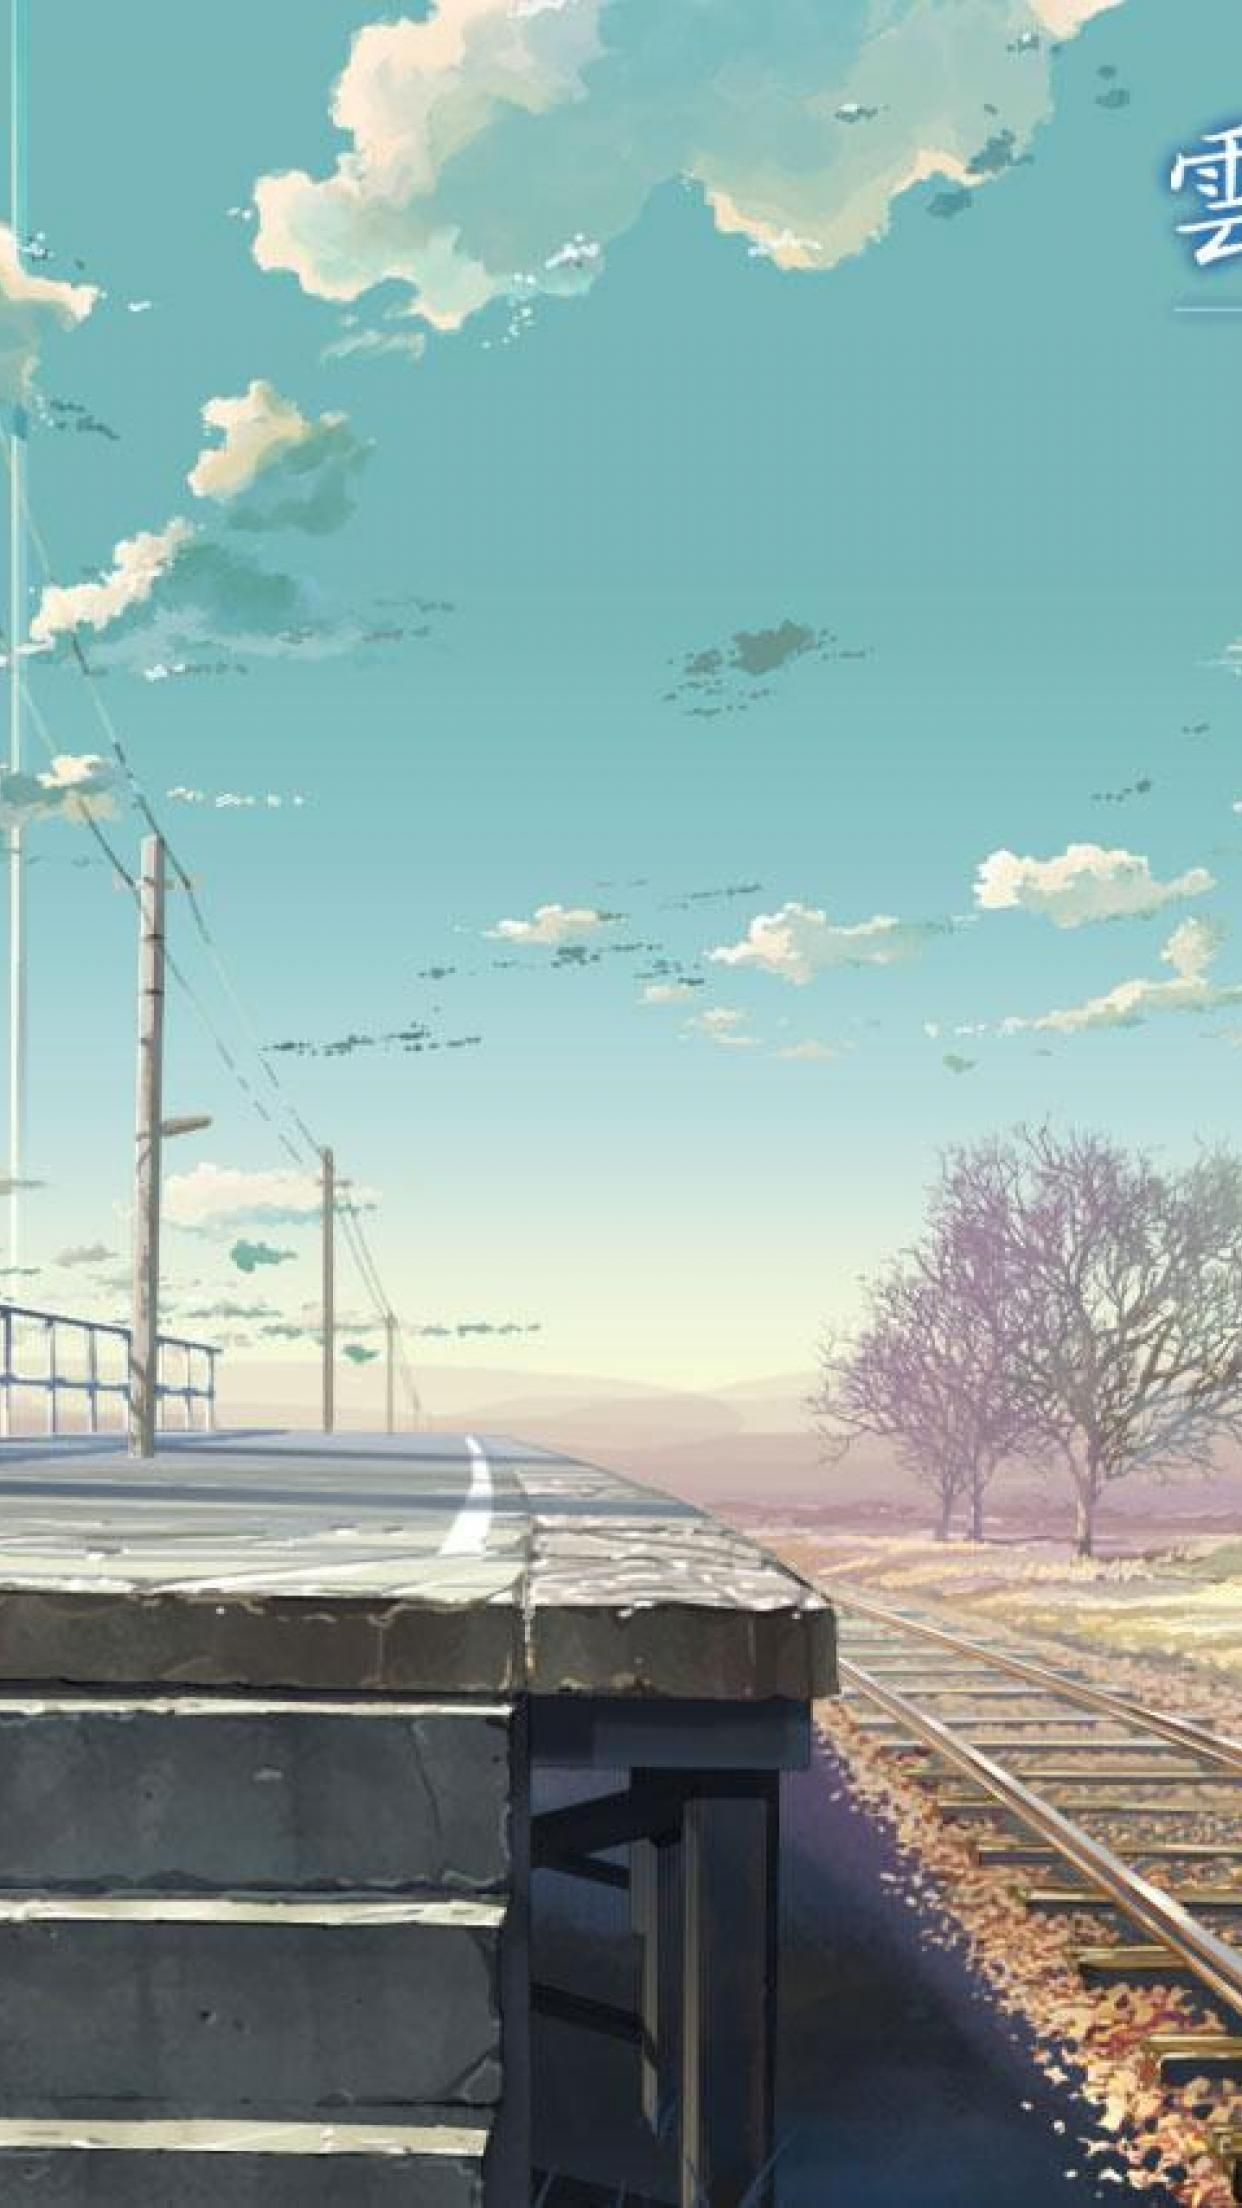 Anime Scenery Iphone Wallpapers Top Free Anime Scenery